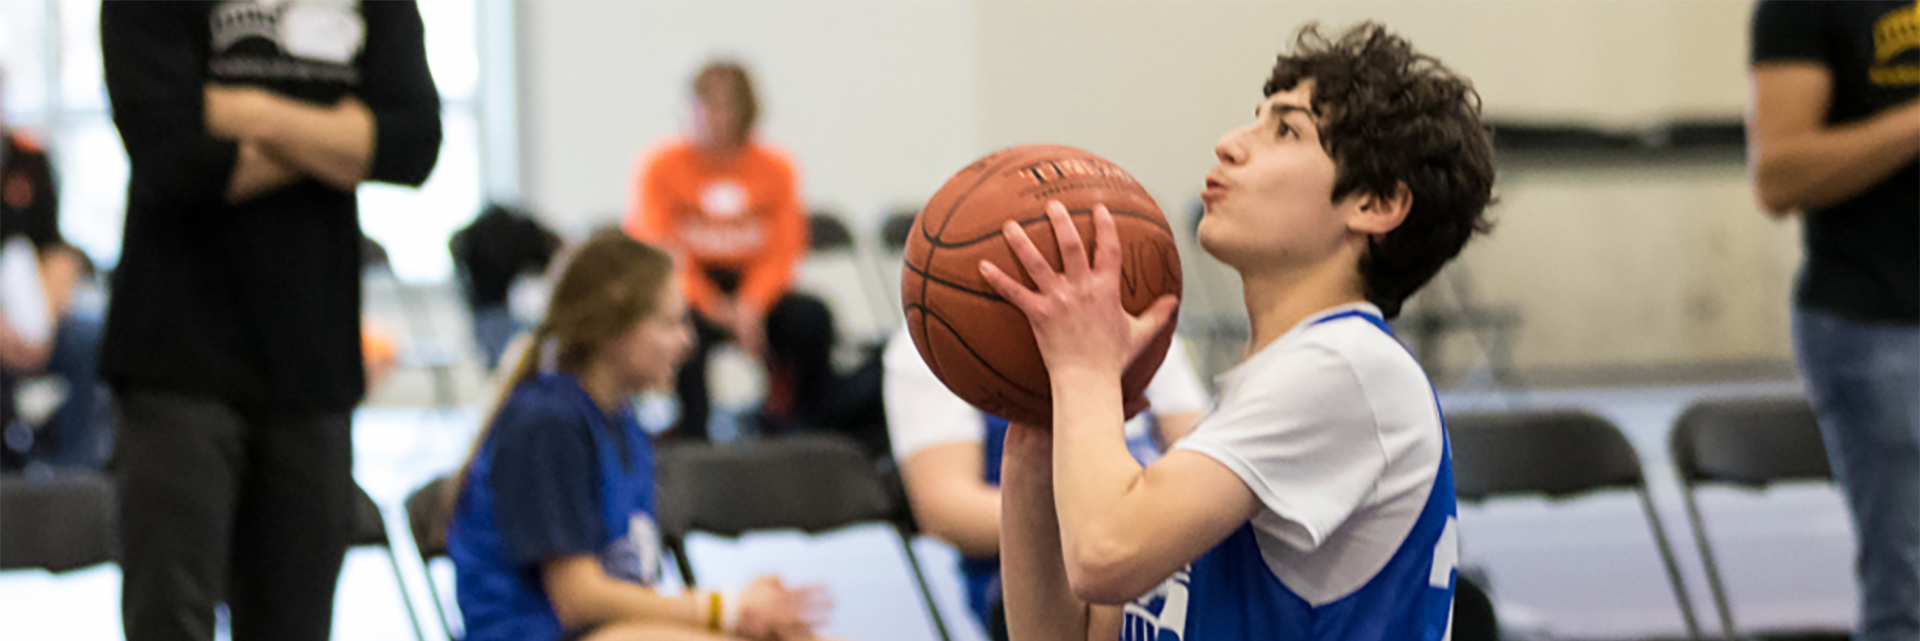 Basketball is offered at the individual and team level for varying types of skill and talent.